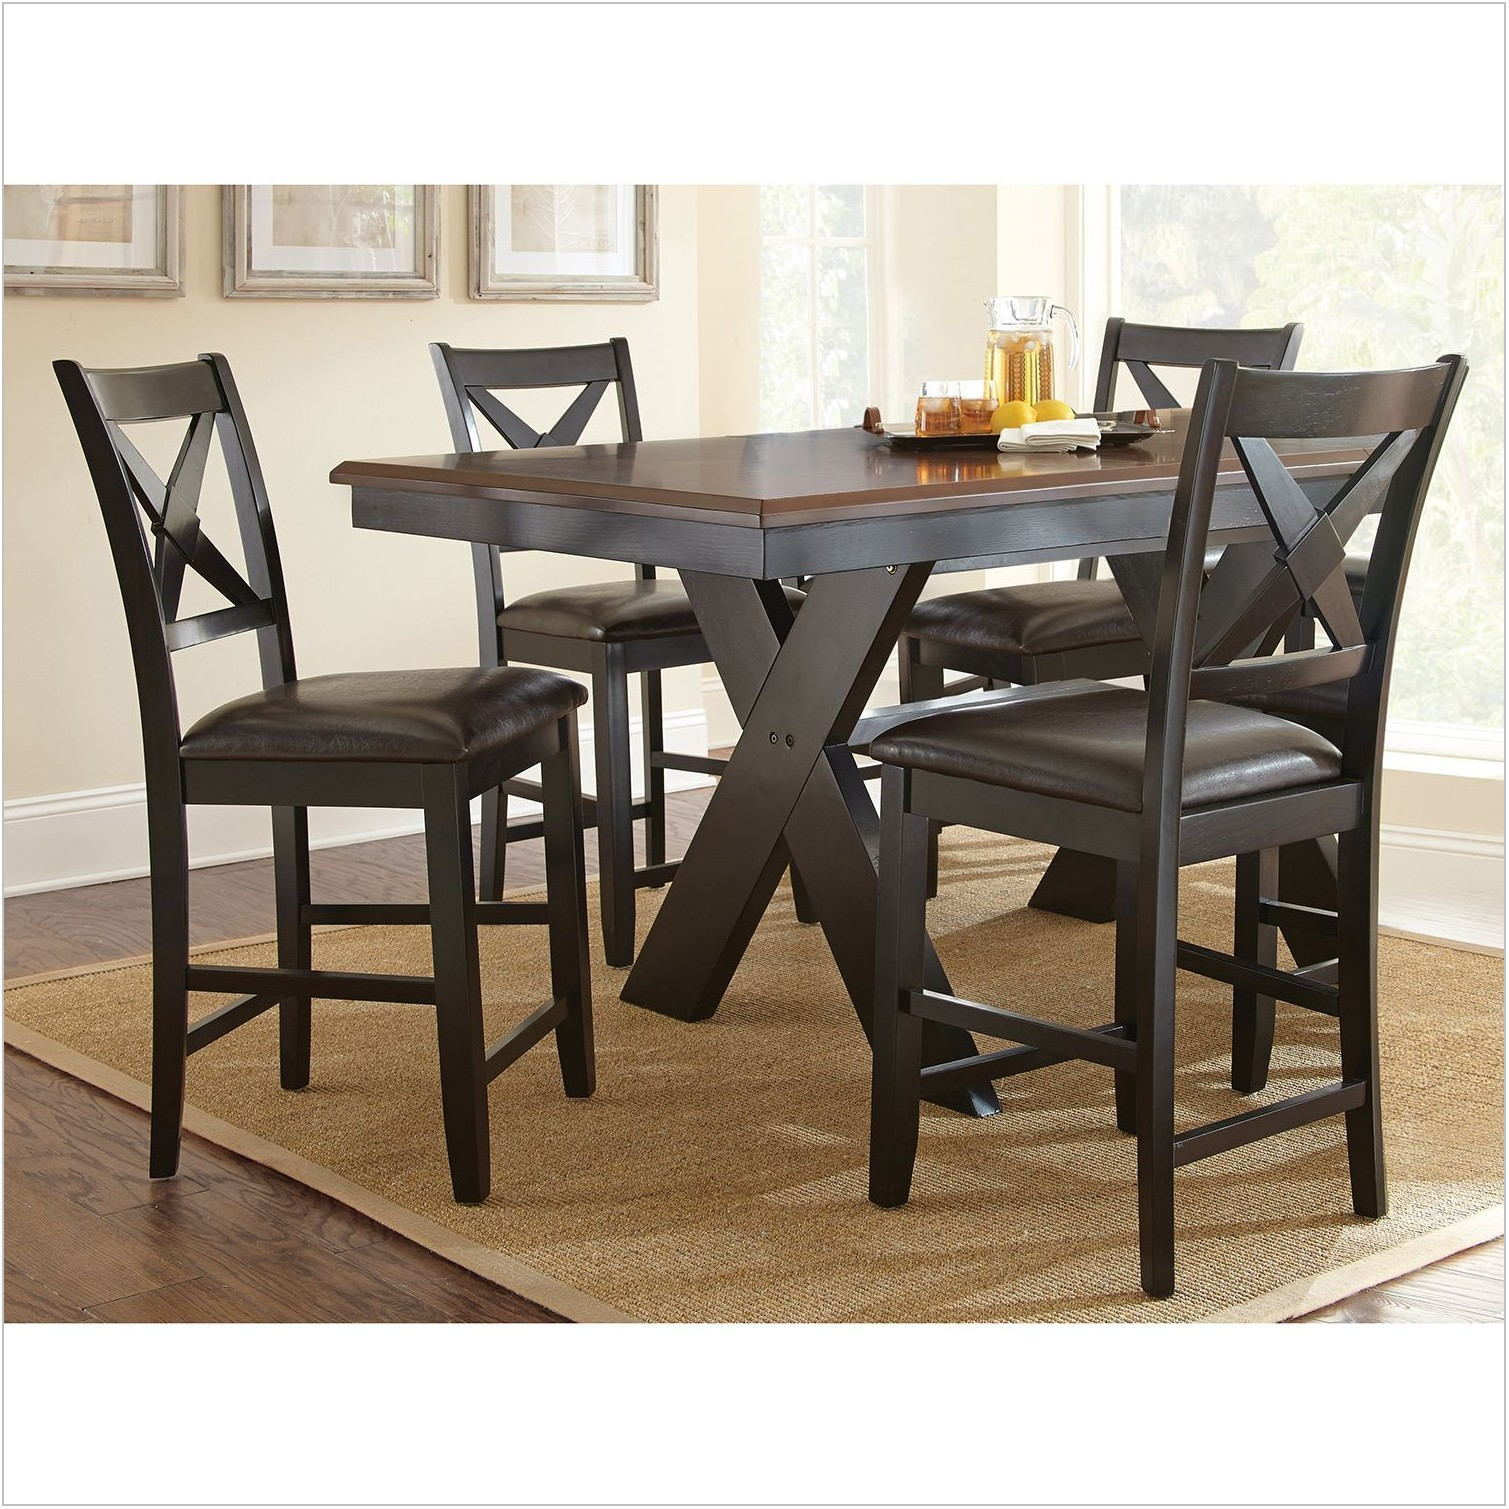 Skempton Dining Room Table And Chairs